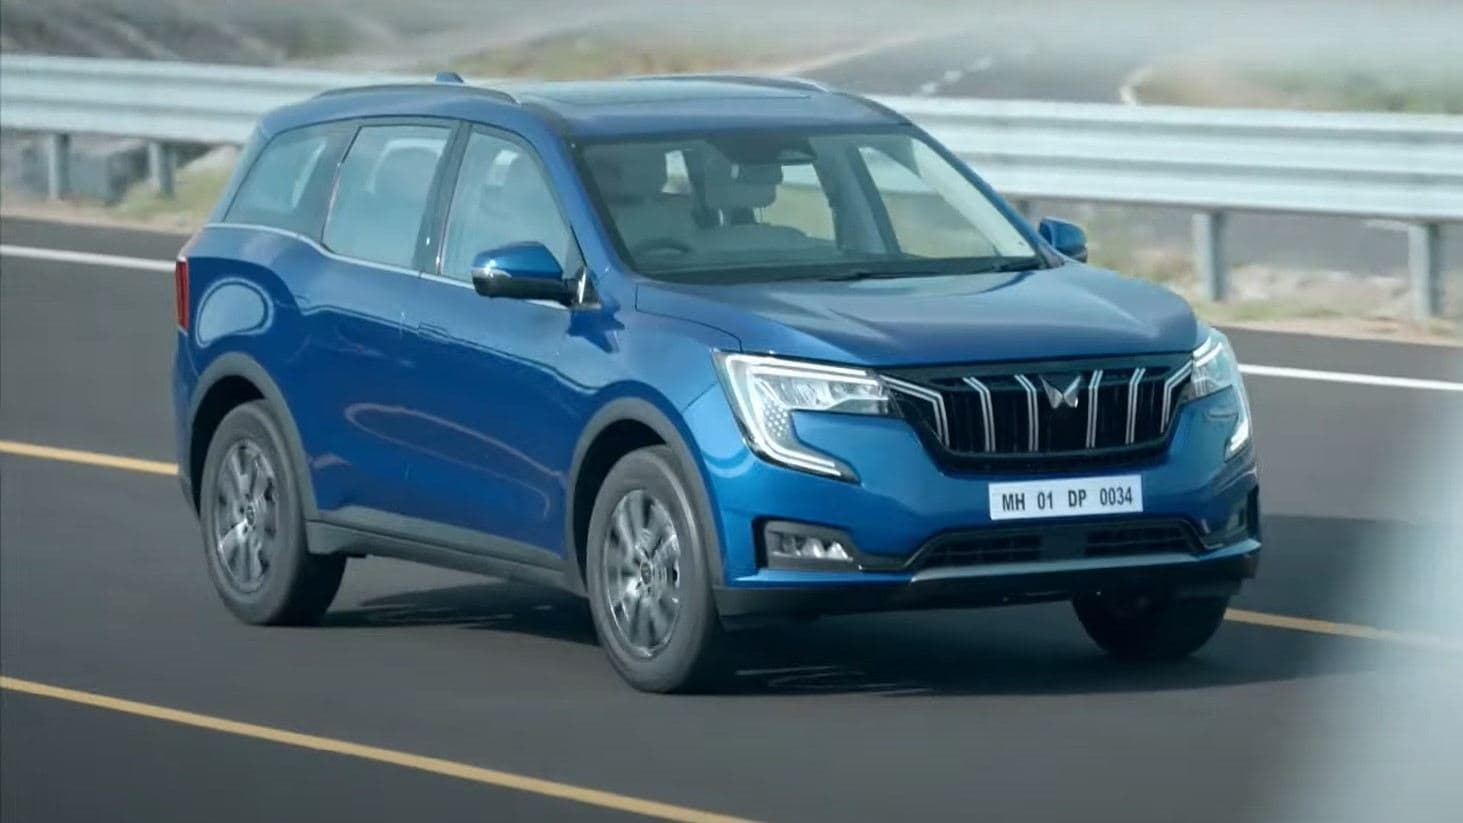 The Mahindra XUV700 was launched in India at a starting price of 11.99 million rubles, which is even below the outgoing XUV500- Technology News, Firstpost